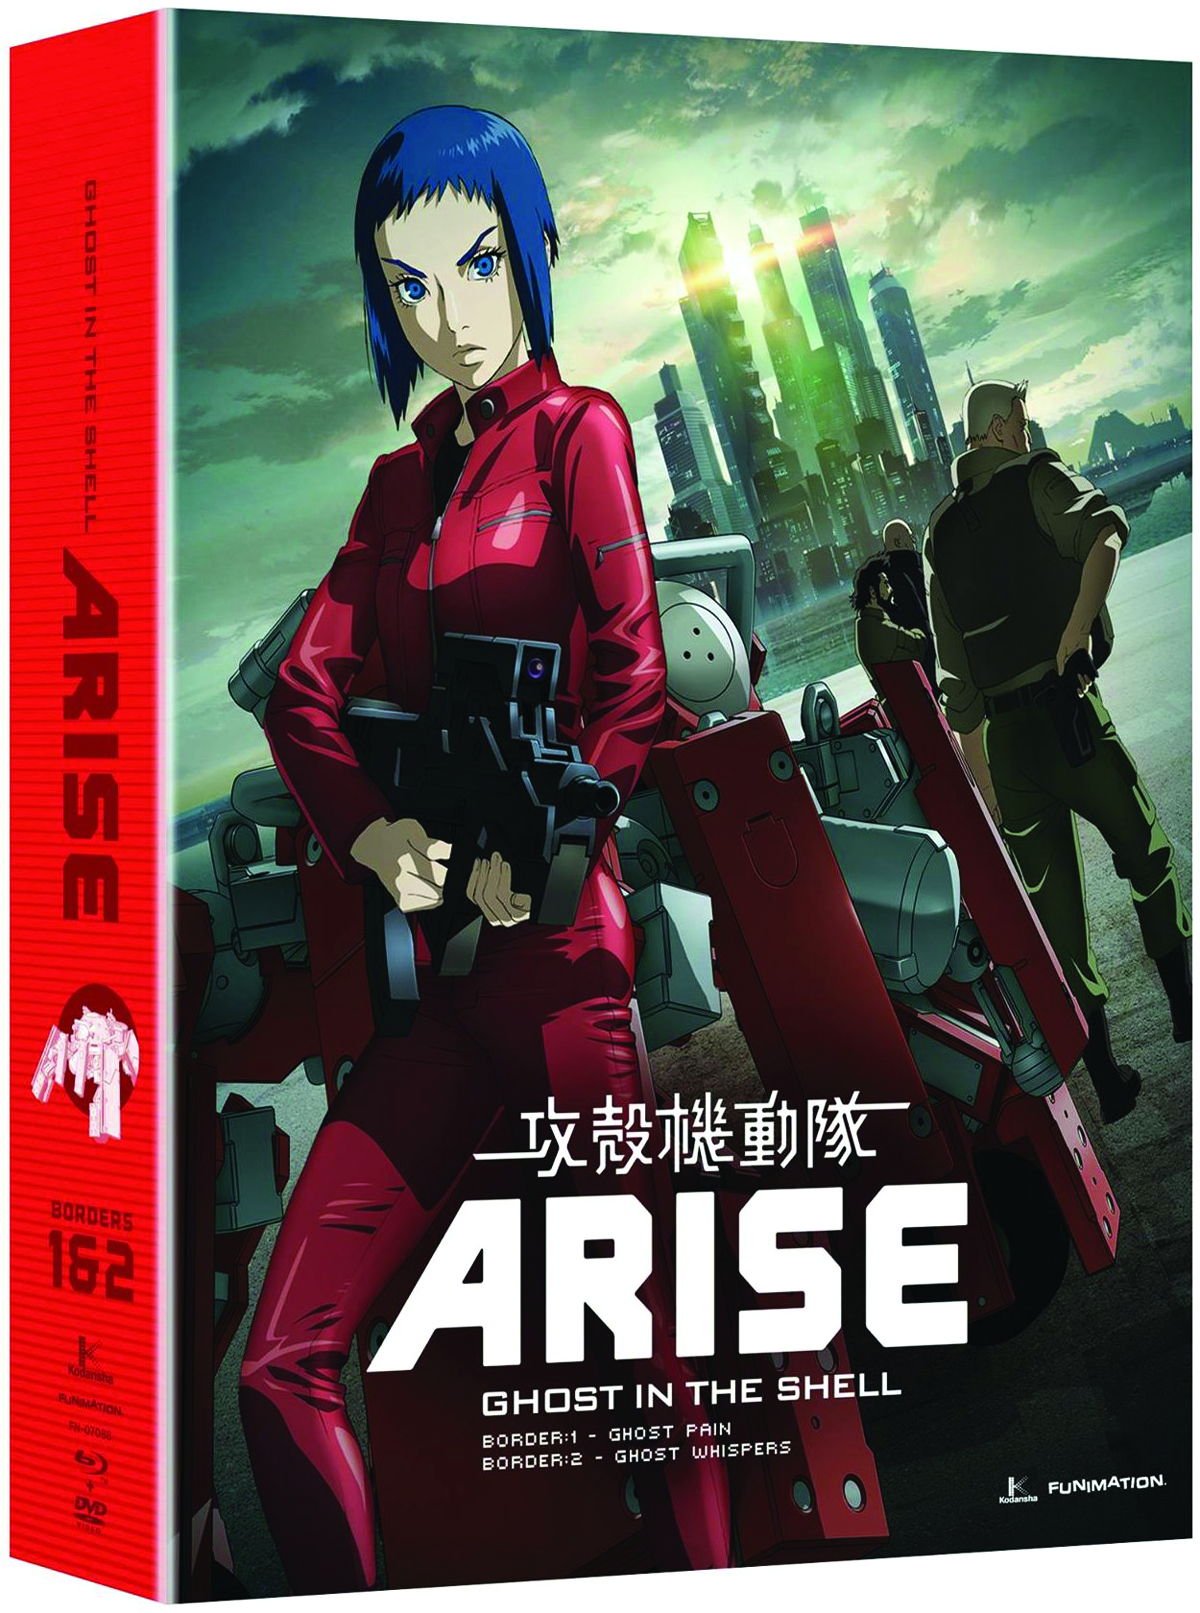 GHOST IN THE SHELL RISE BD + DVD BORDERS 1 & 2